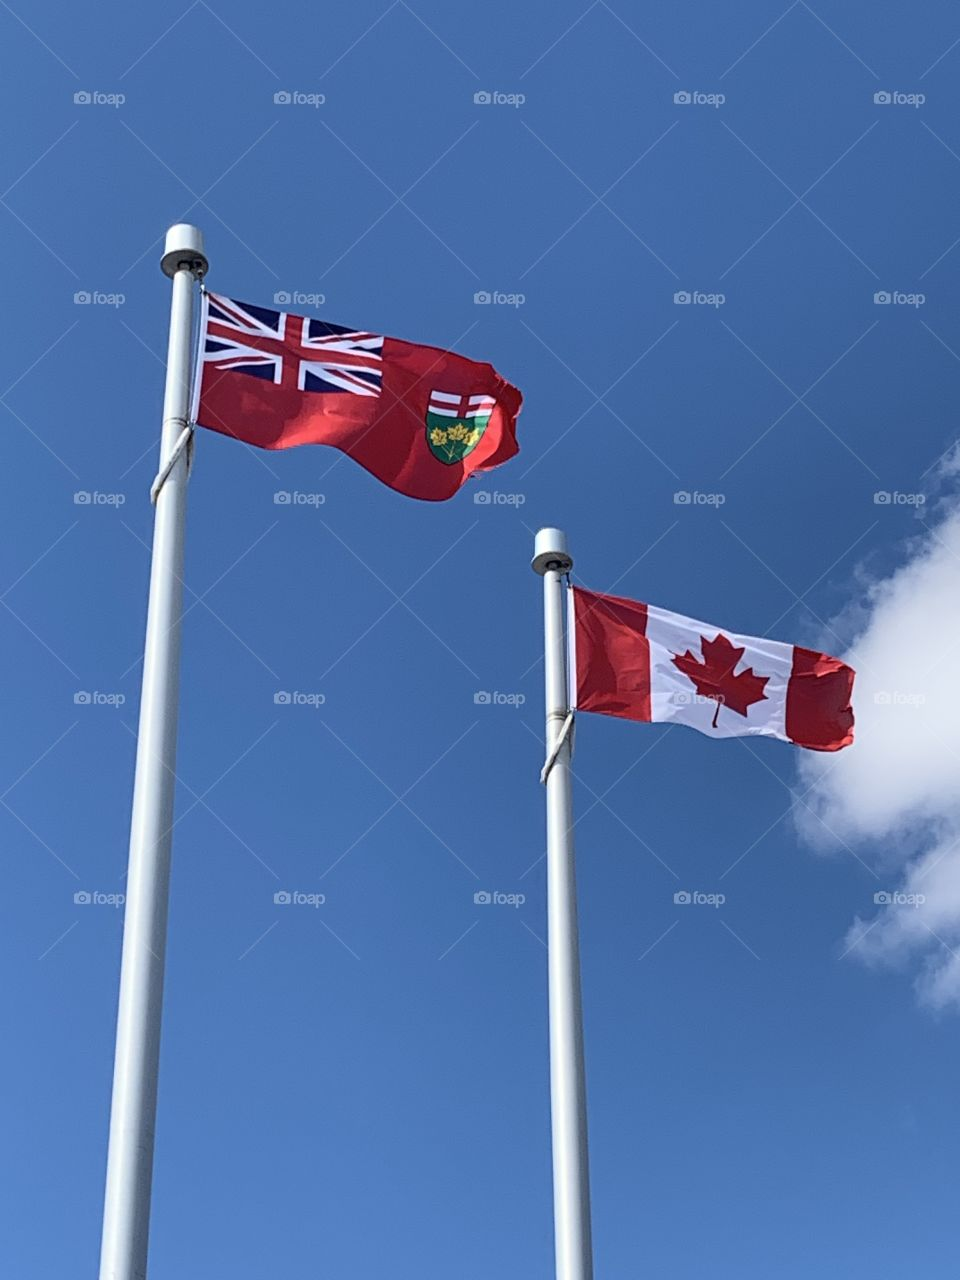 Canada and Ontario Flags